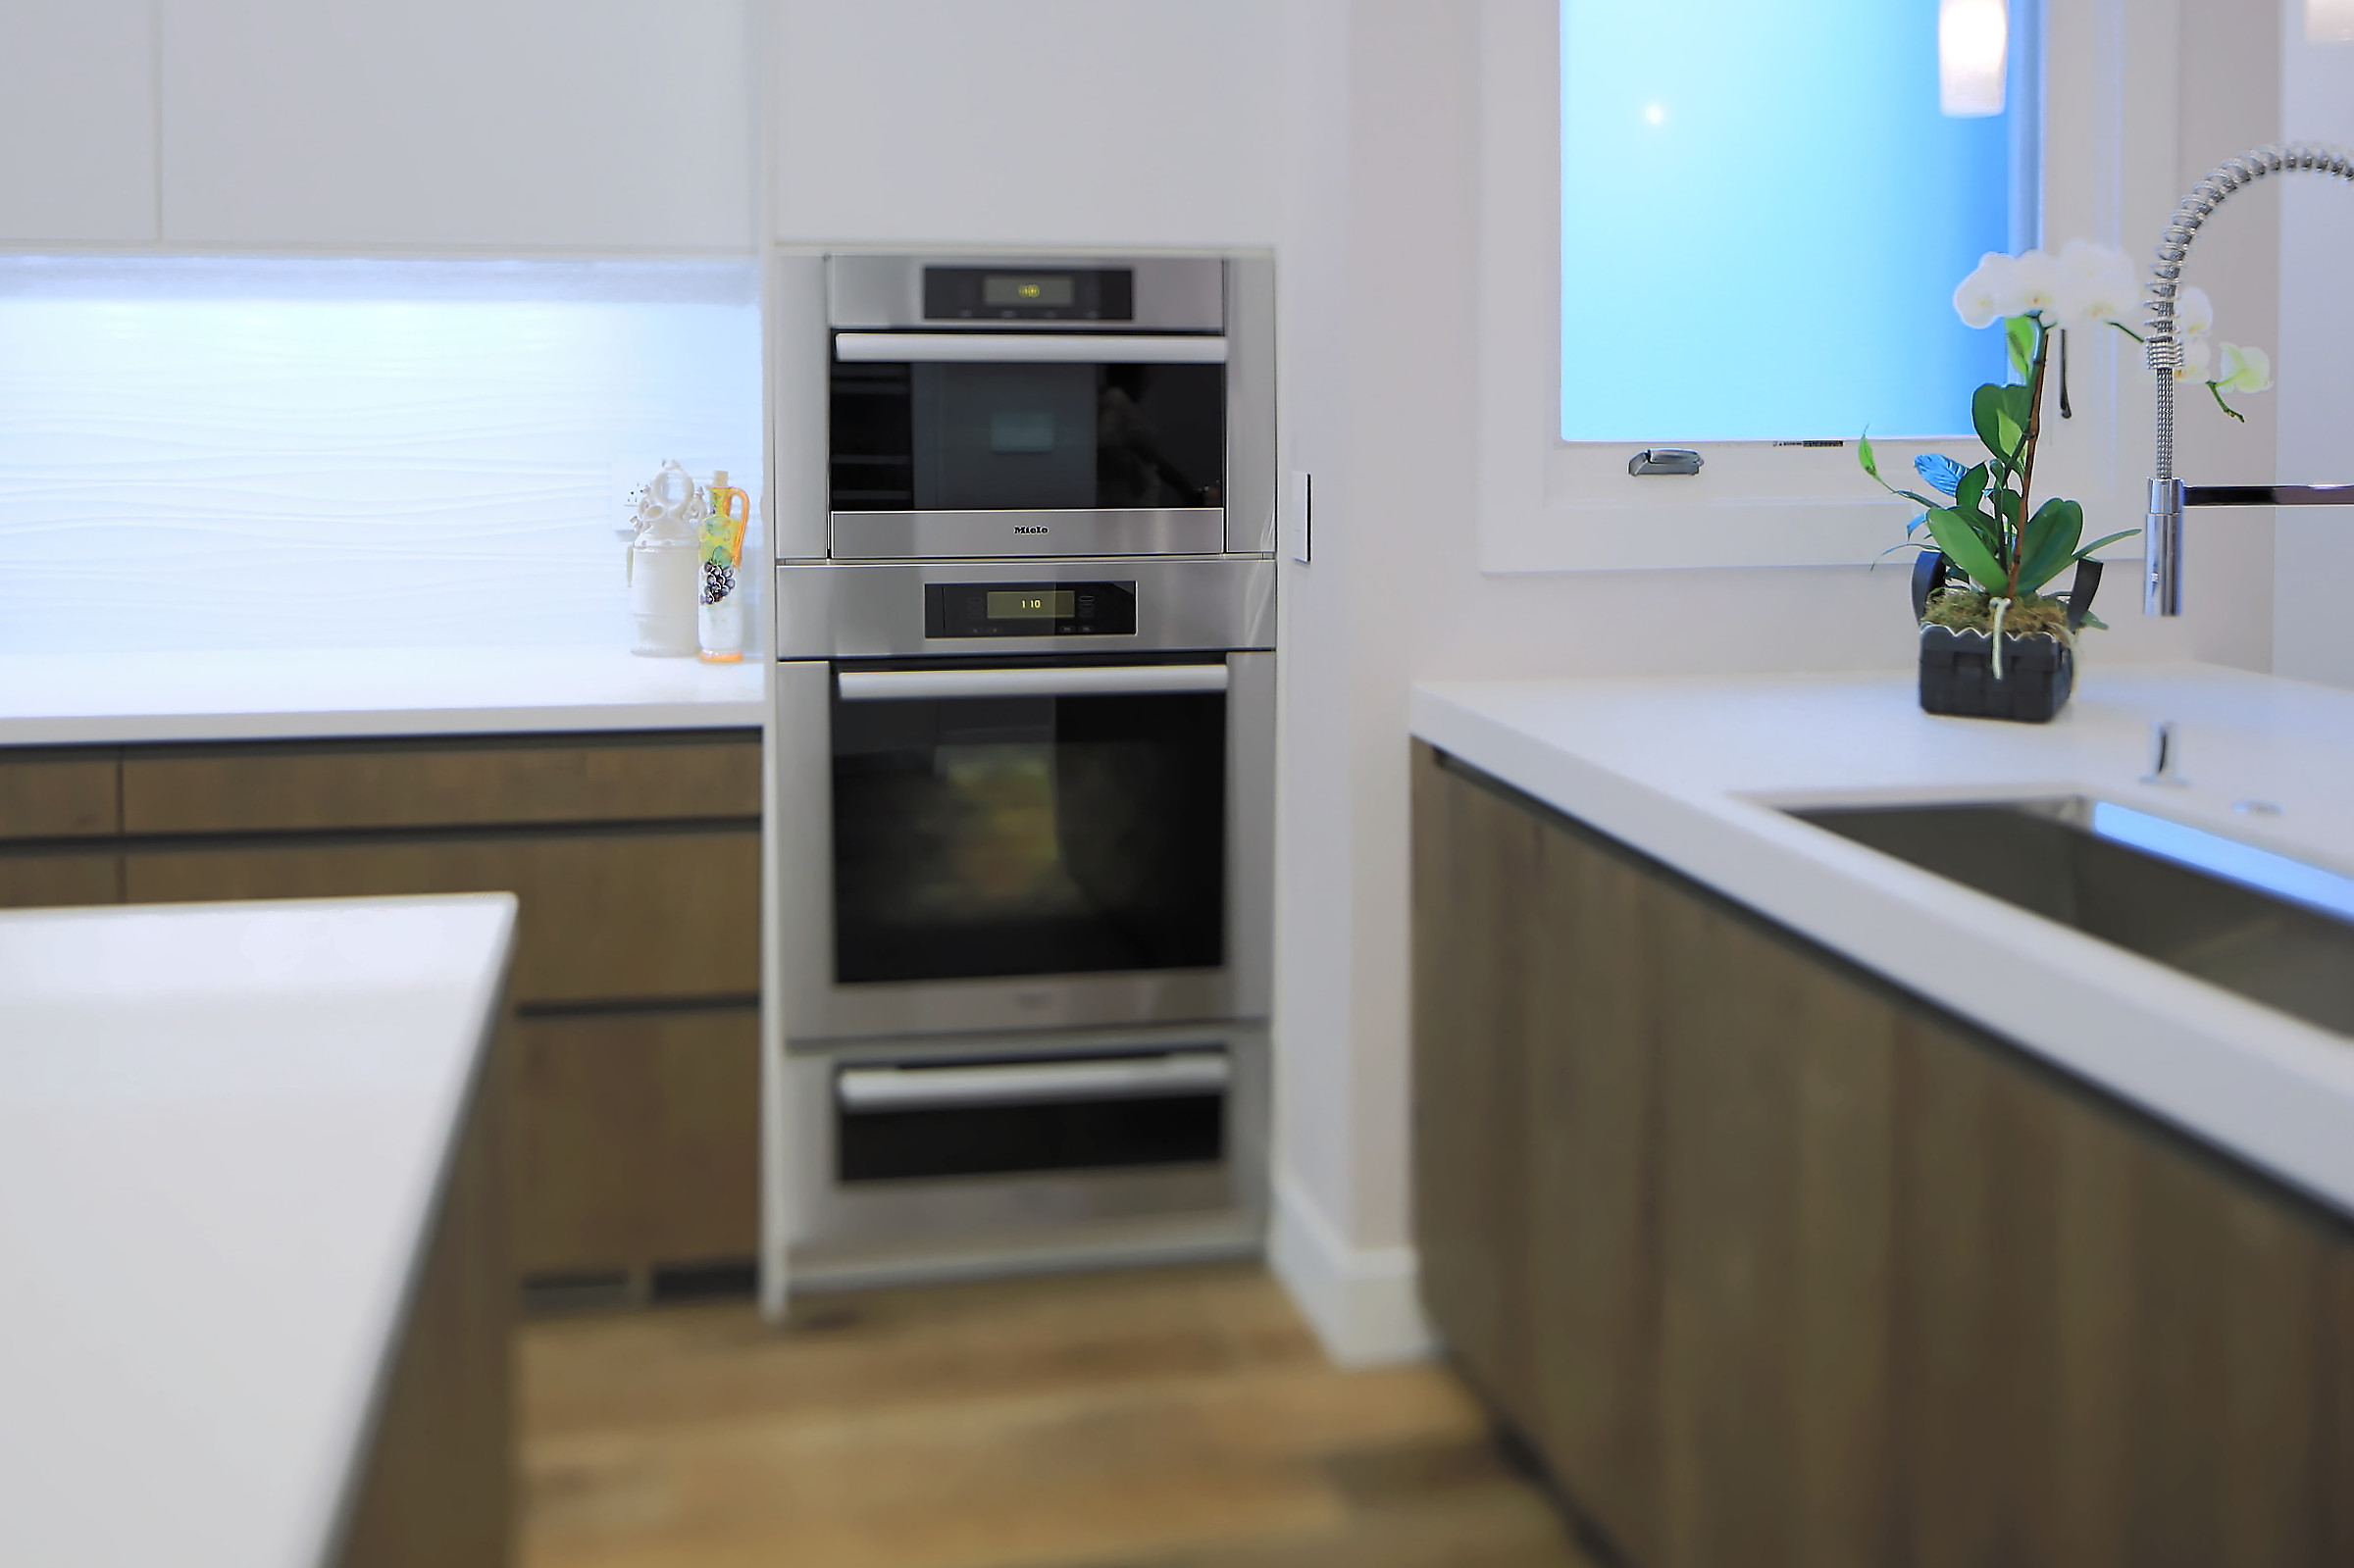 Tucked behind a wall with easy access are modern Miele appliances.